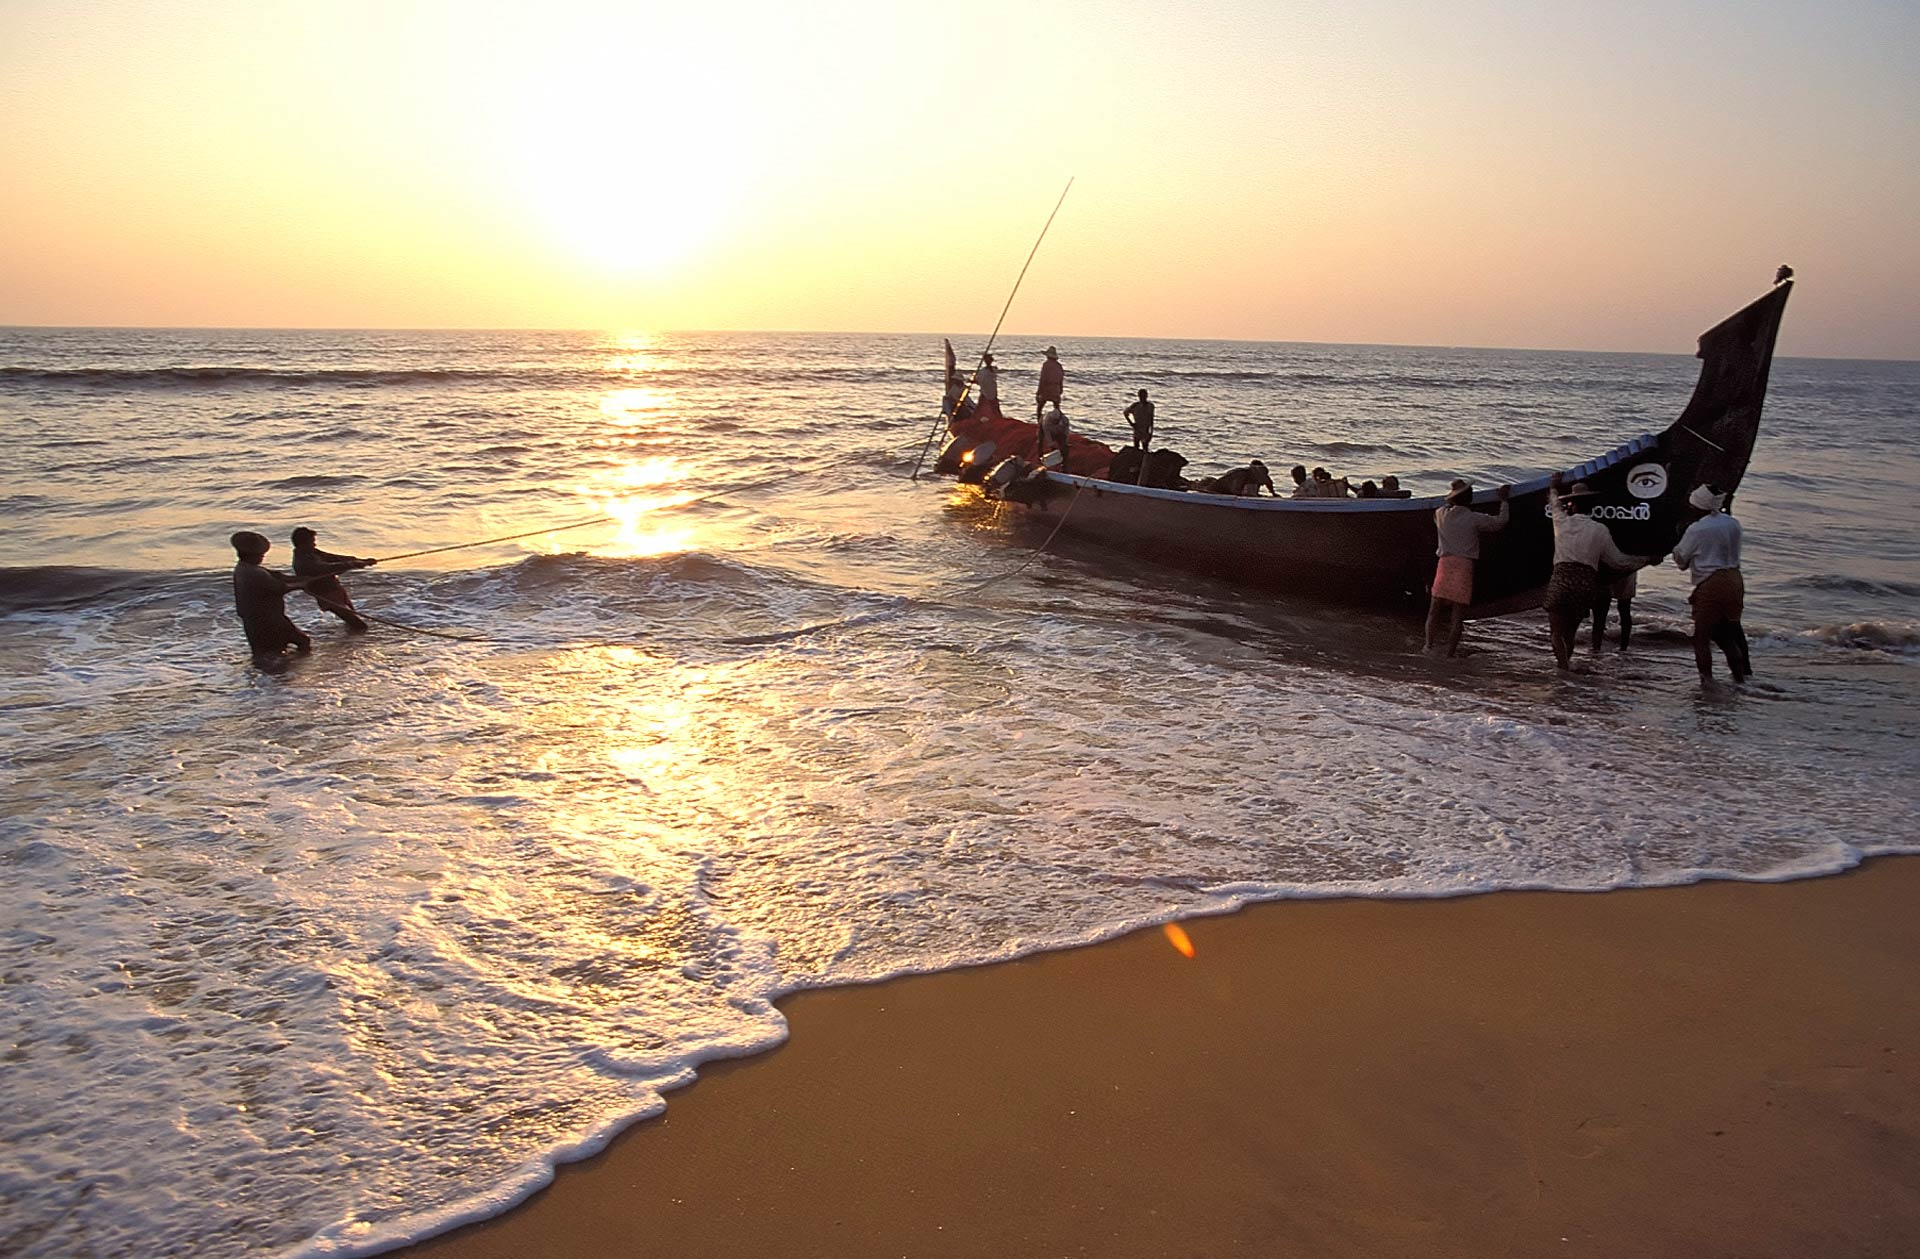 Fishermen bringing in the catch on Nattika Beach at sunset, Kerala, India